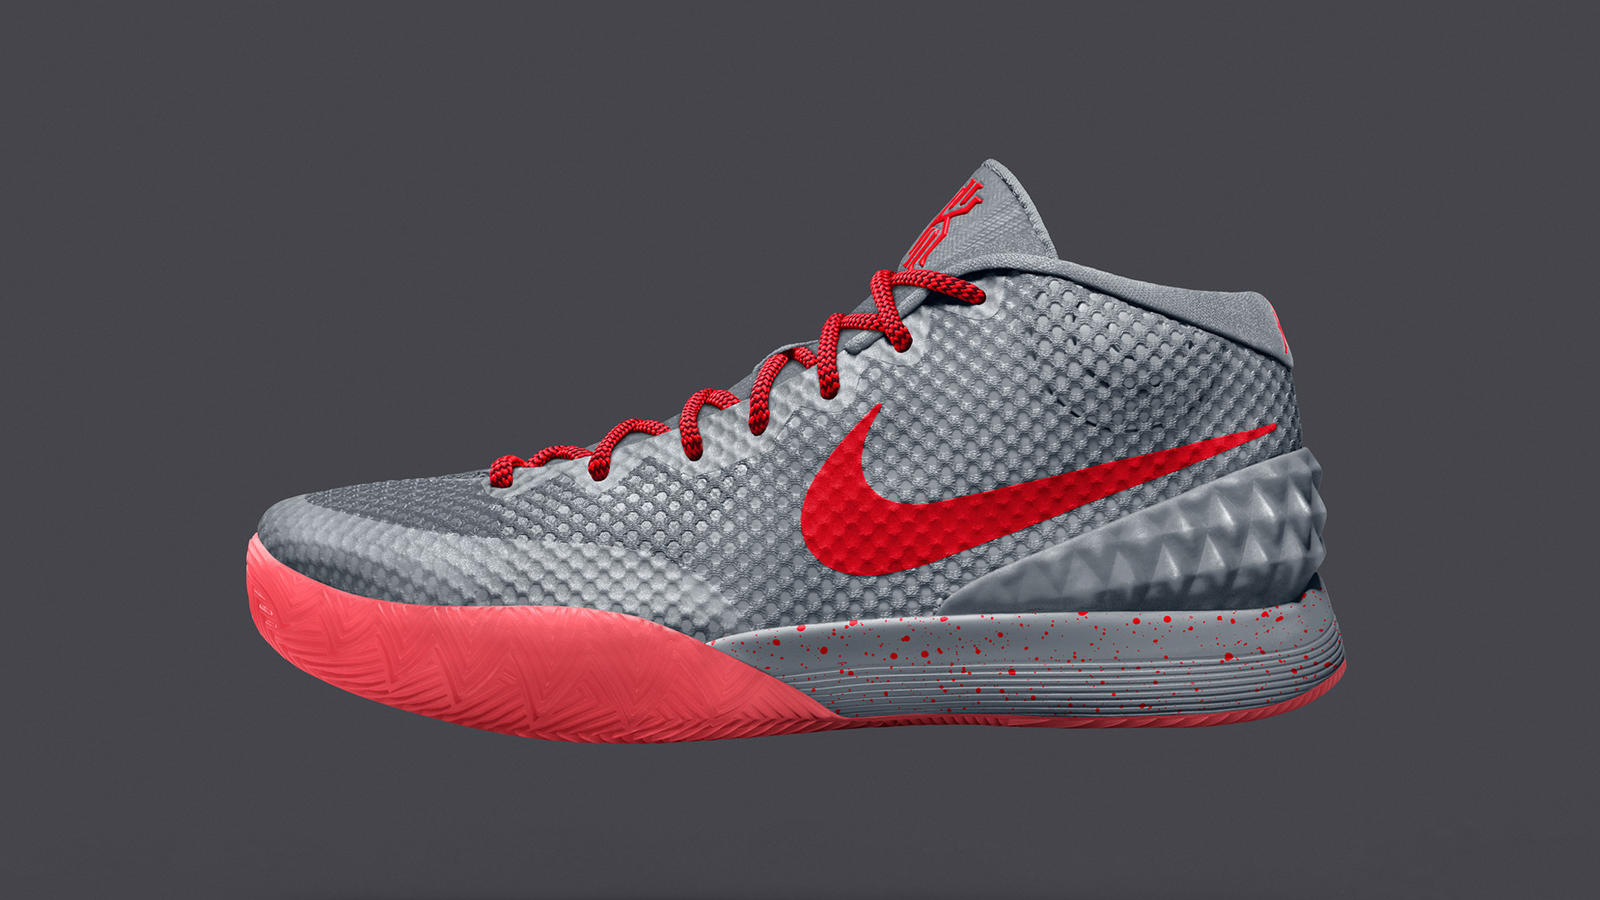 6a3a5d8f2b44 ... Irving in Brooklyn. Sp15 NikeiD Kyrie 1 2058x1570 BlackVolt. KYRIE 1  NIKEiD custom colorway. Sp15 NikeiD Kyrie 1 2058x1570 WolfGrey